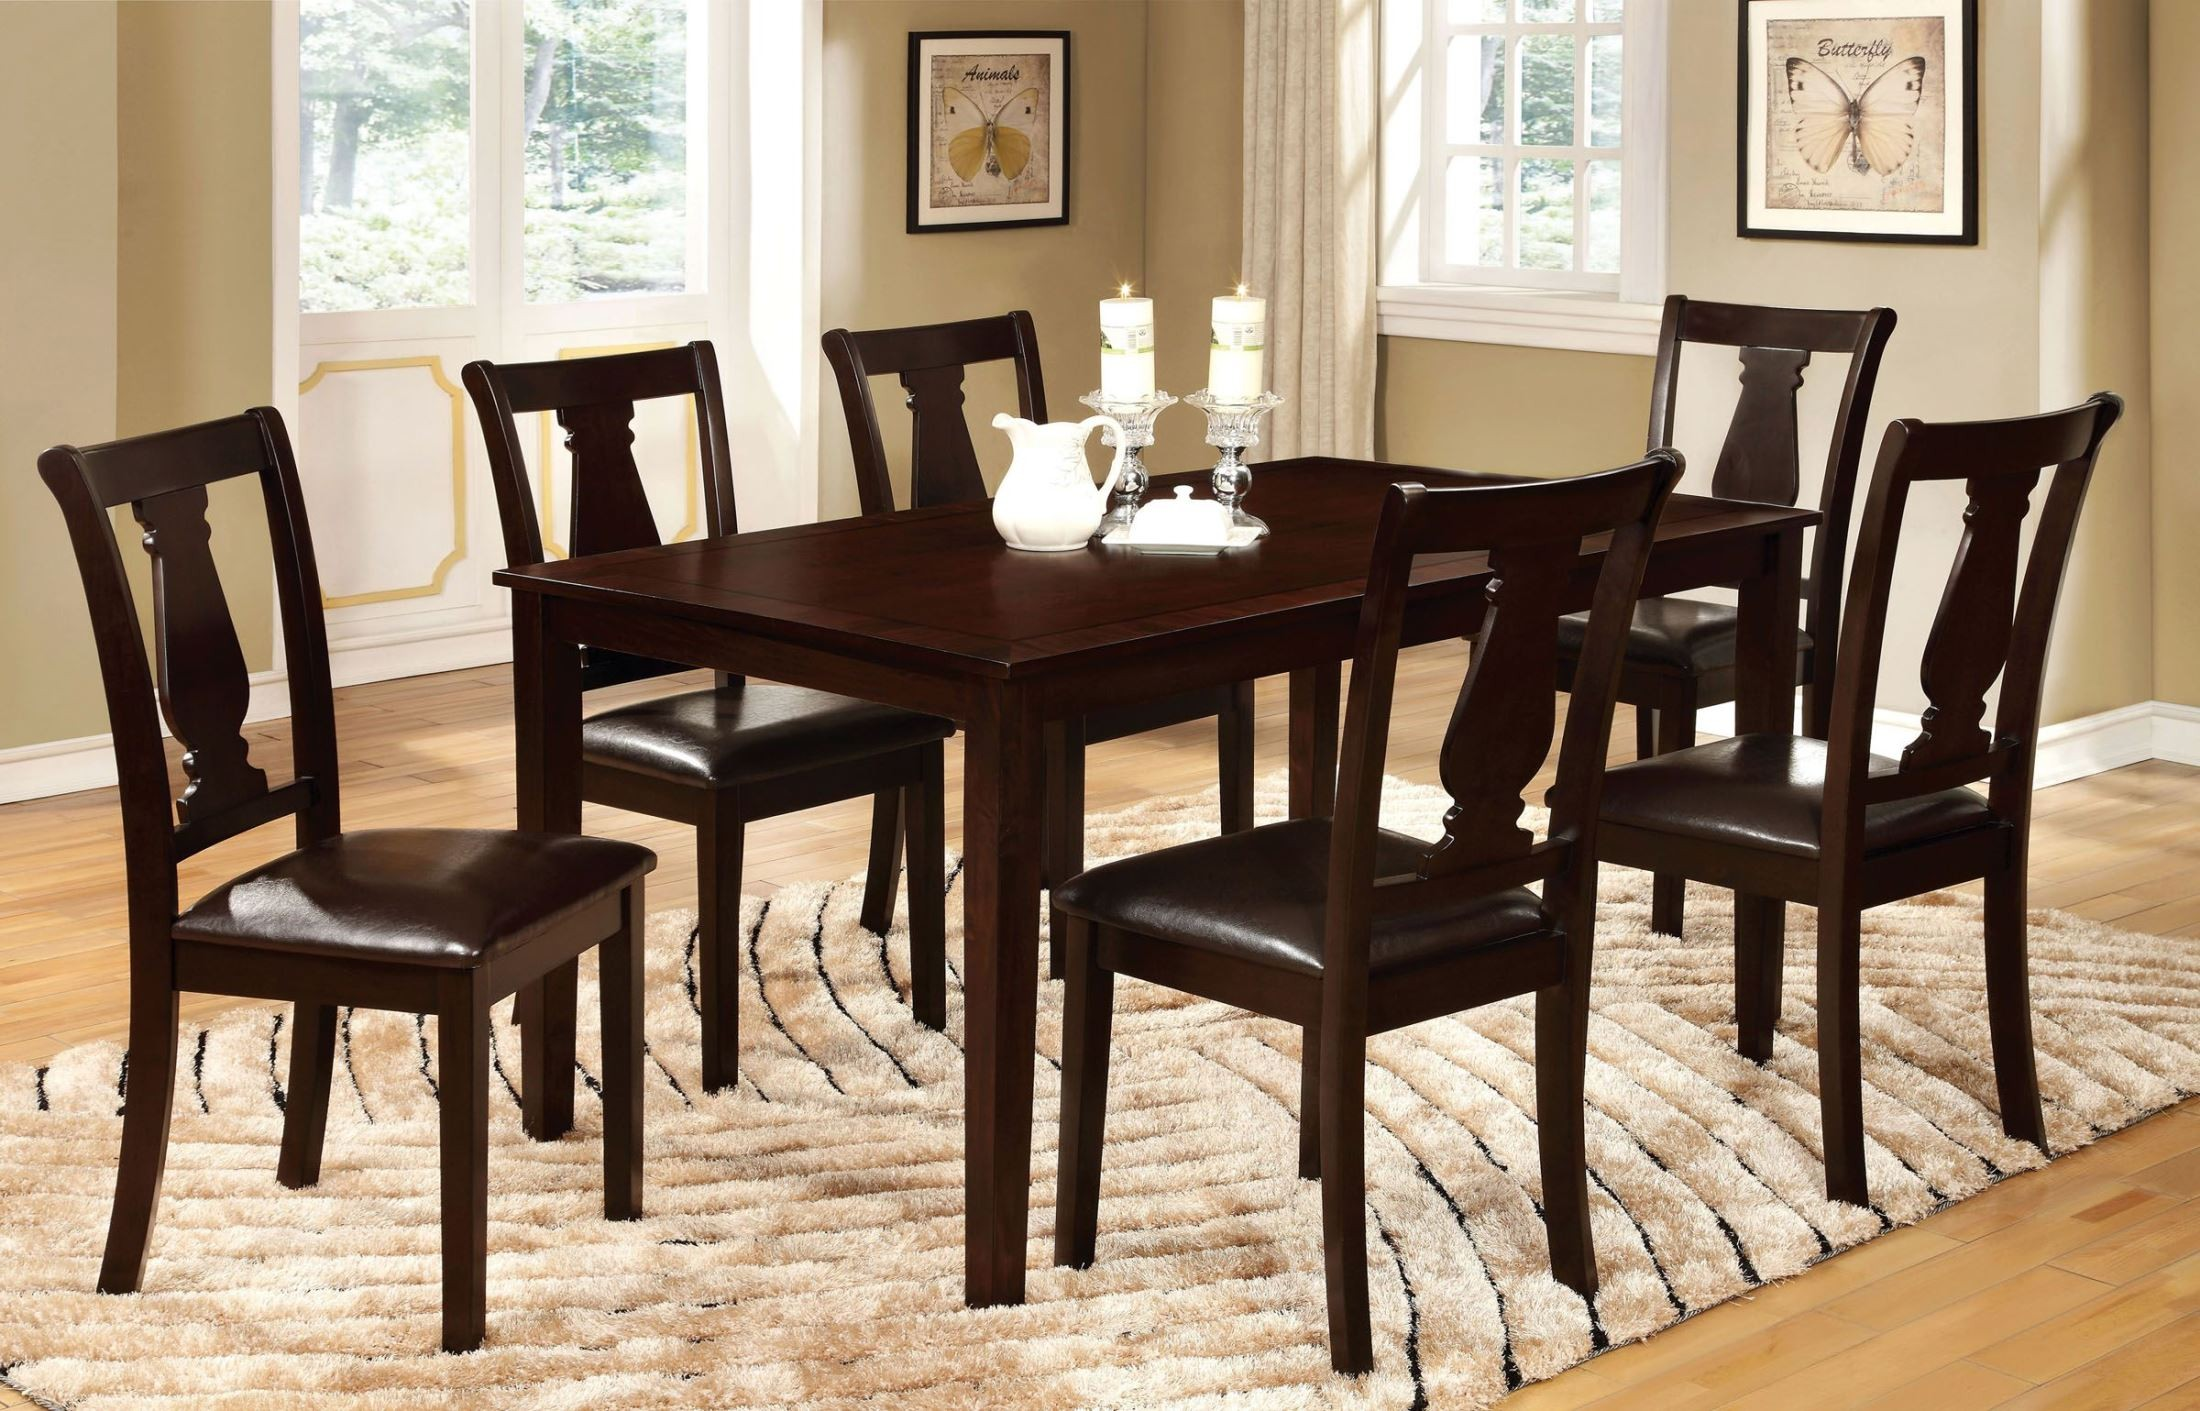 Bridle I Espresso 7 Piece Dining Table Set From Furniture